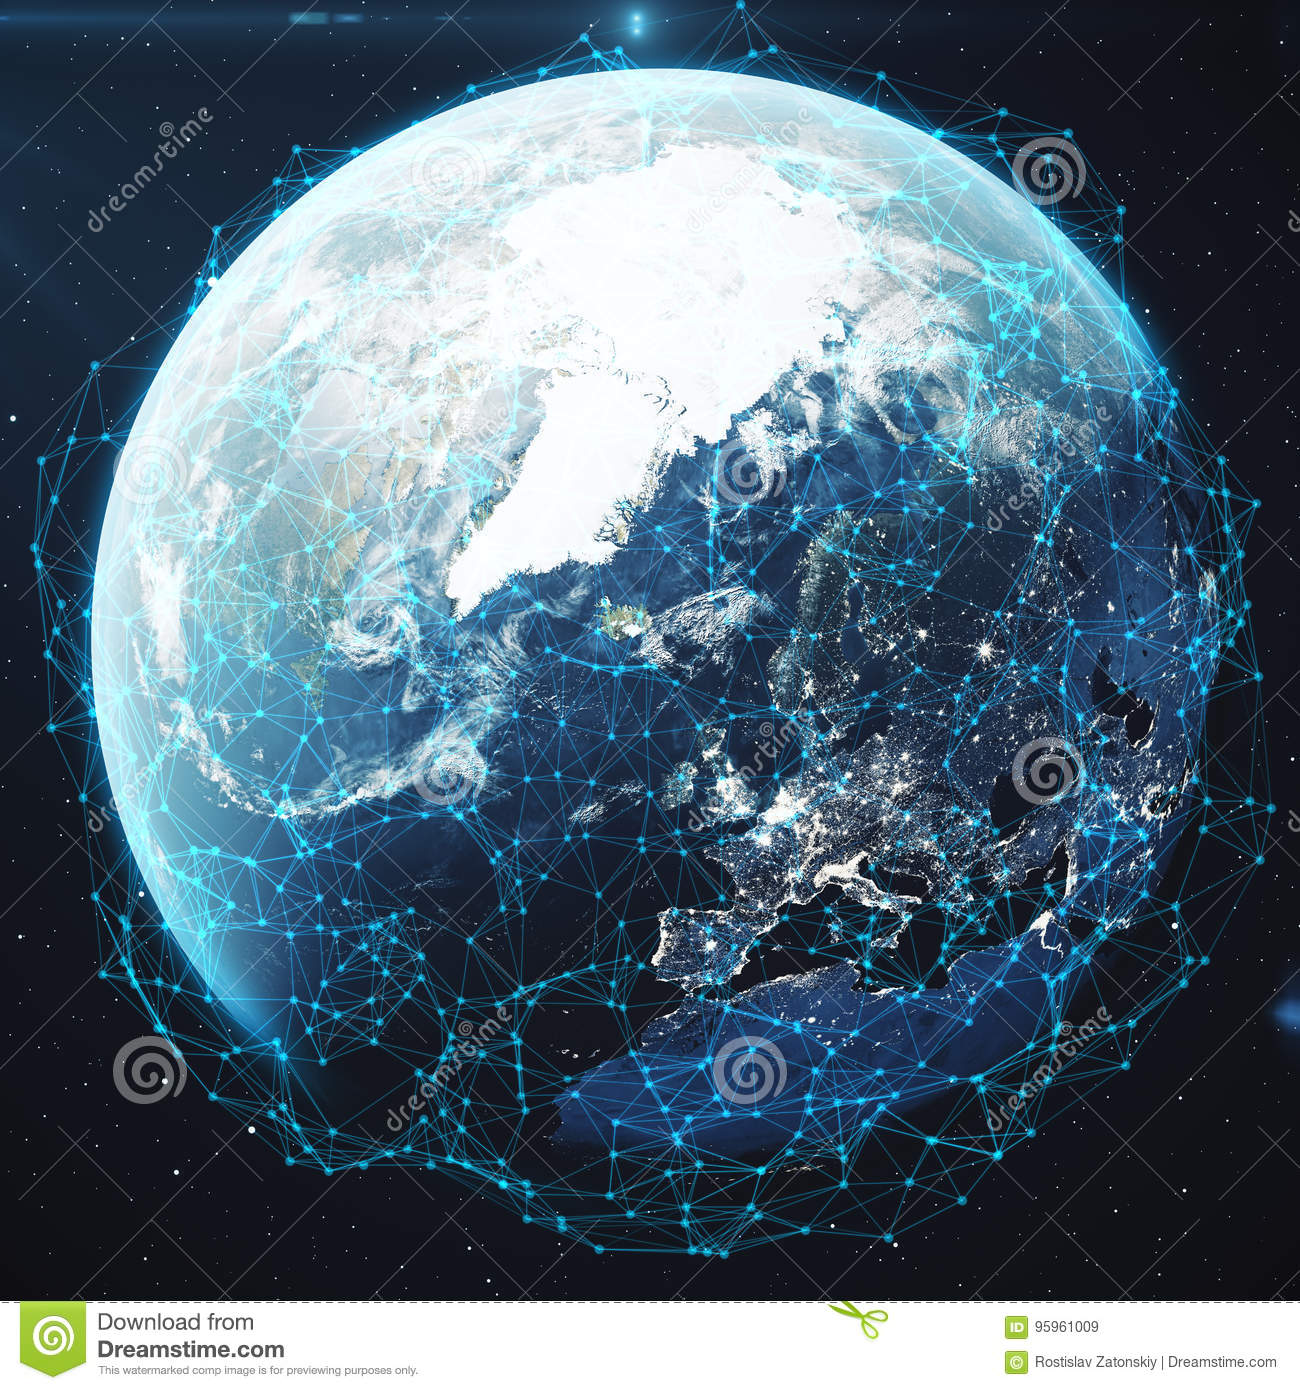 3D Rendering Network And Data Exchange Over Planet Earth In